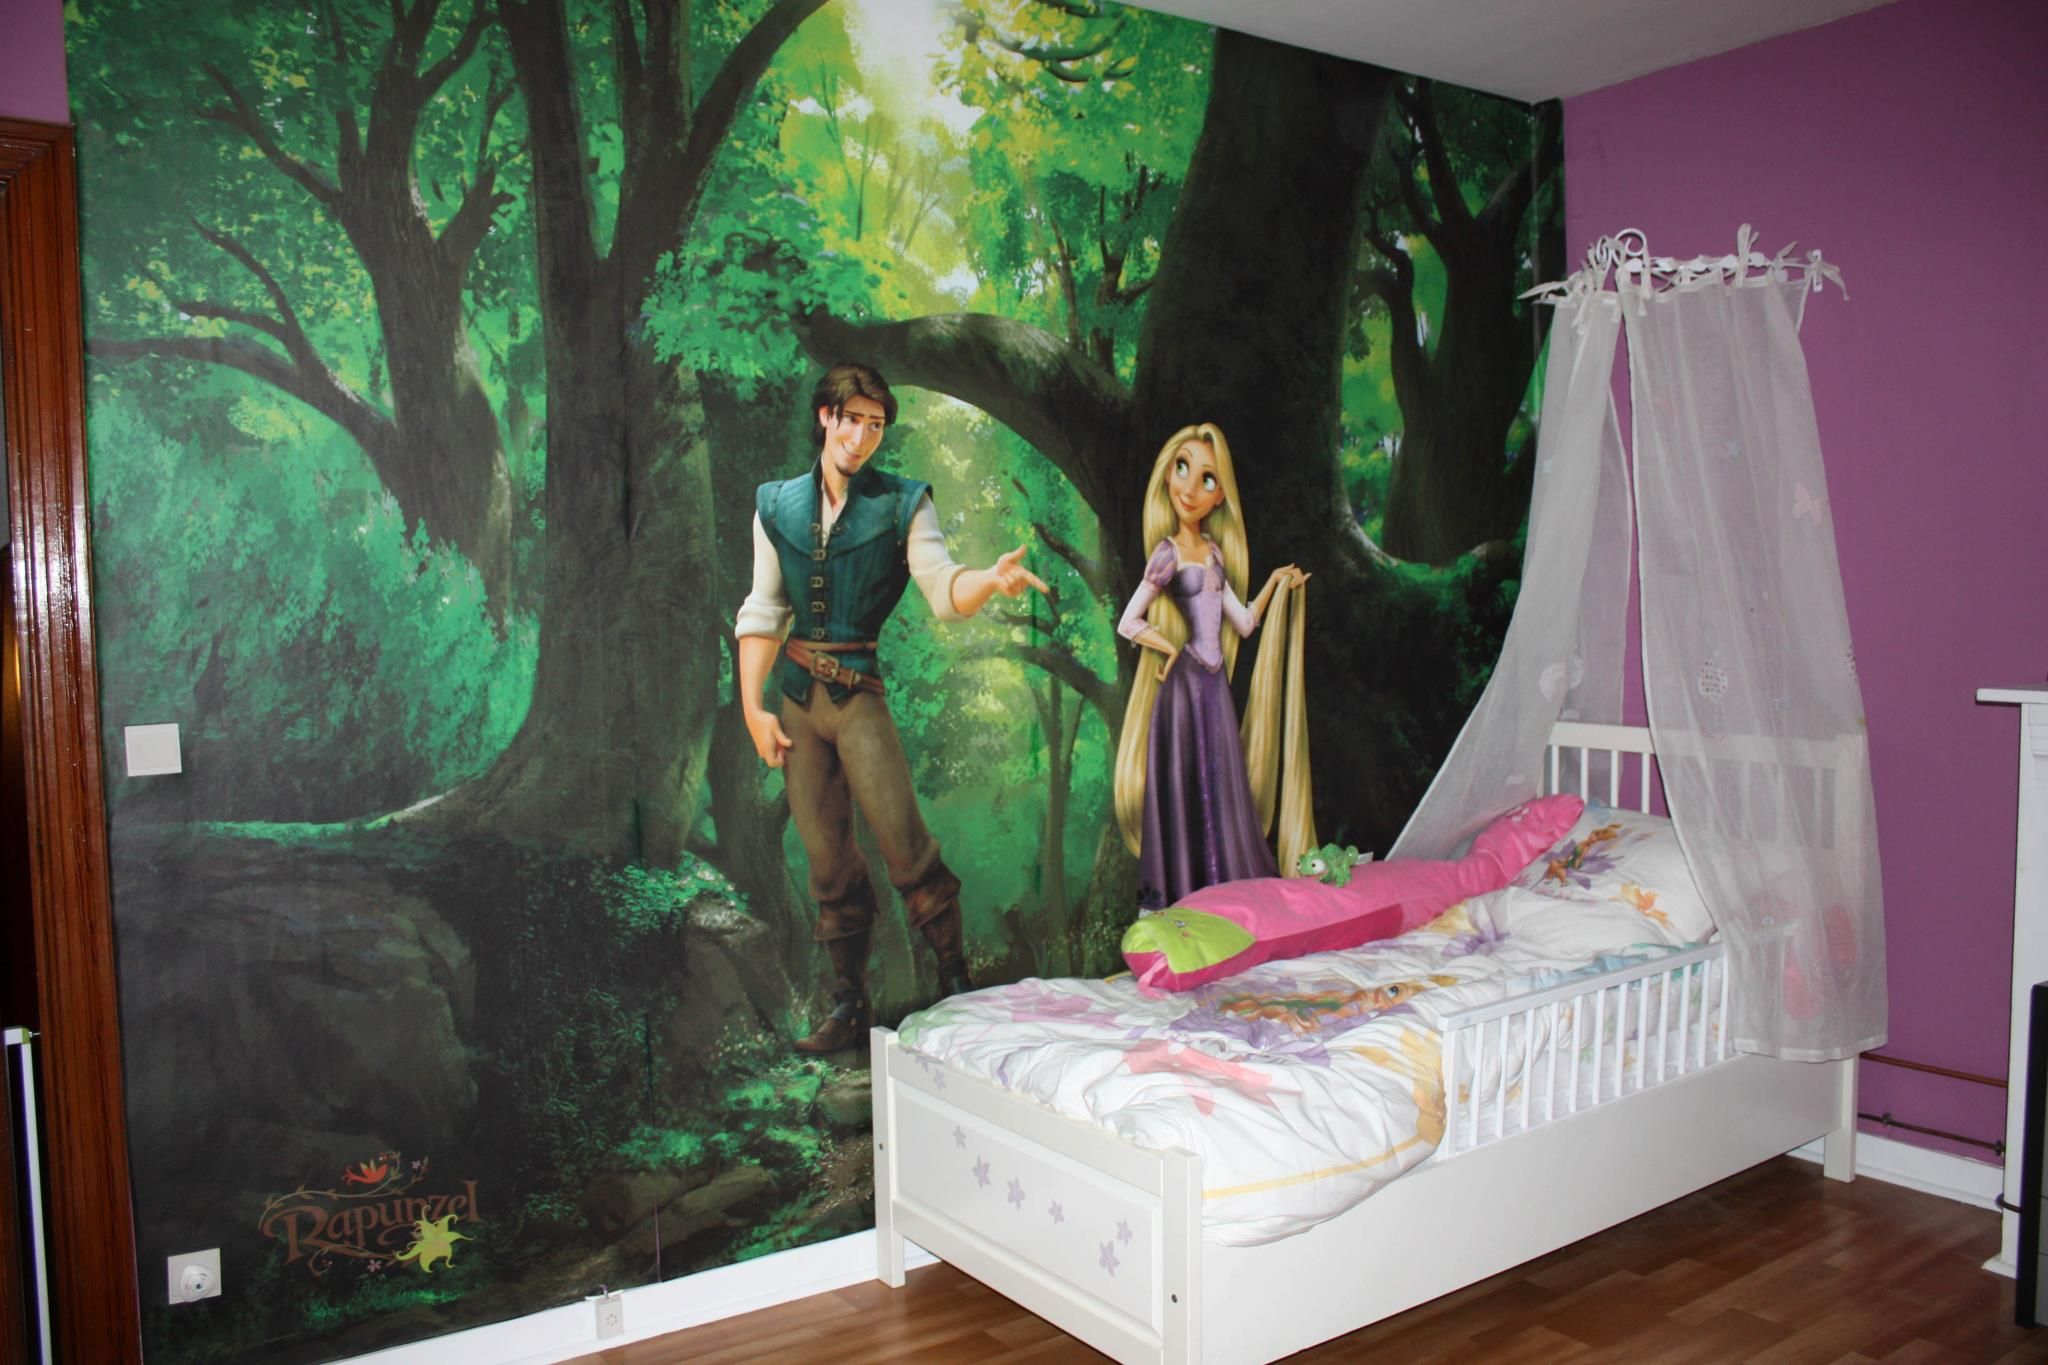 chambre r alis e avec une fresque princess disney raiponce tangeld pinterest raiponce. Black Bedroom Furniture Sets. Home Design Ideas